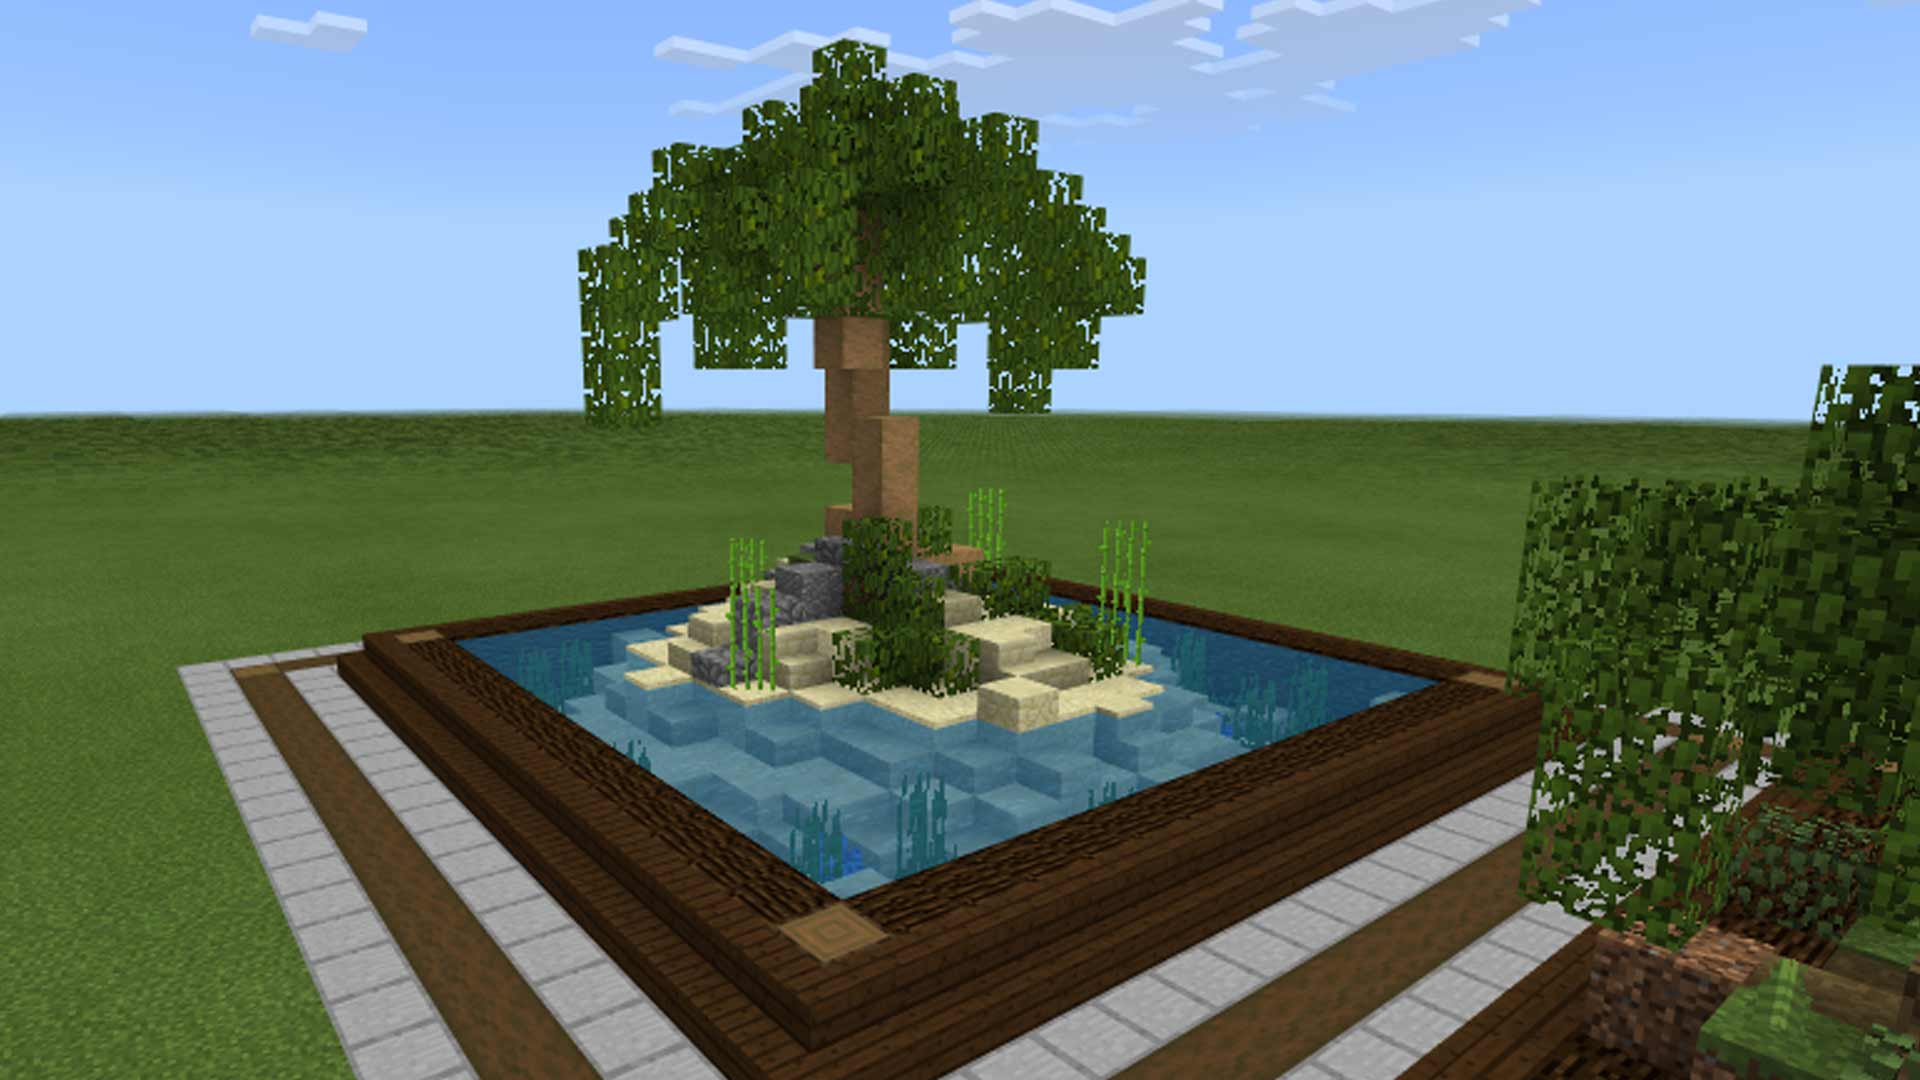 Minecraft Landscaping Ideas As A Build Style